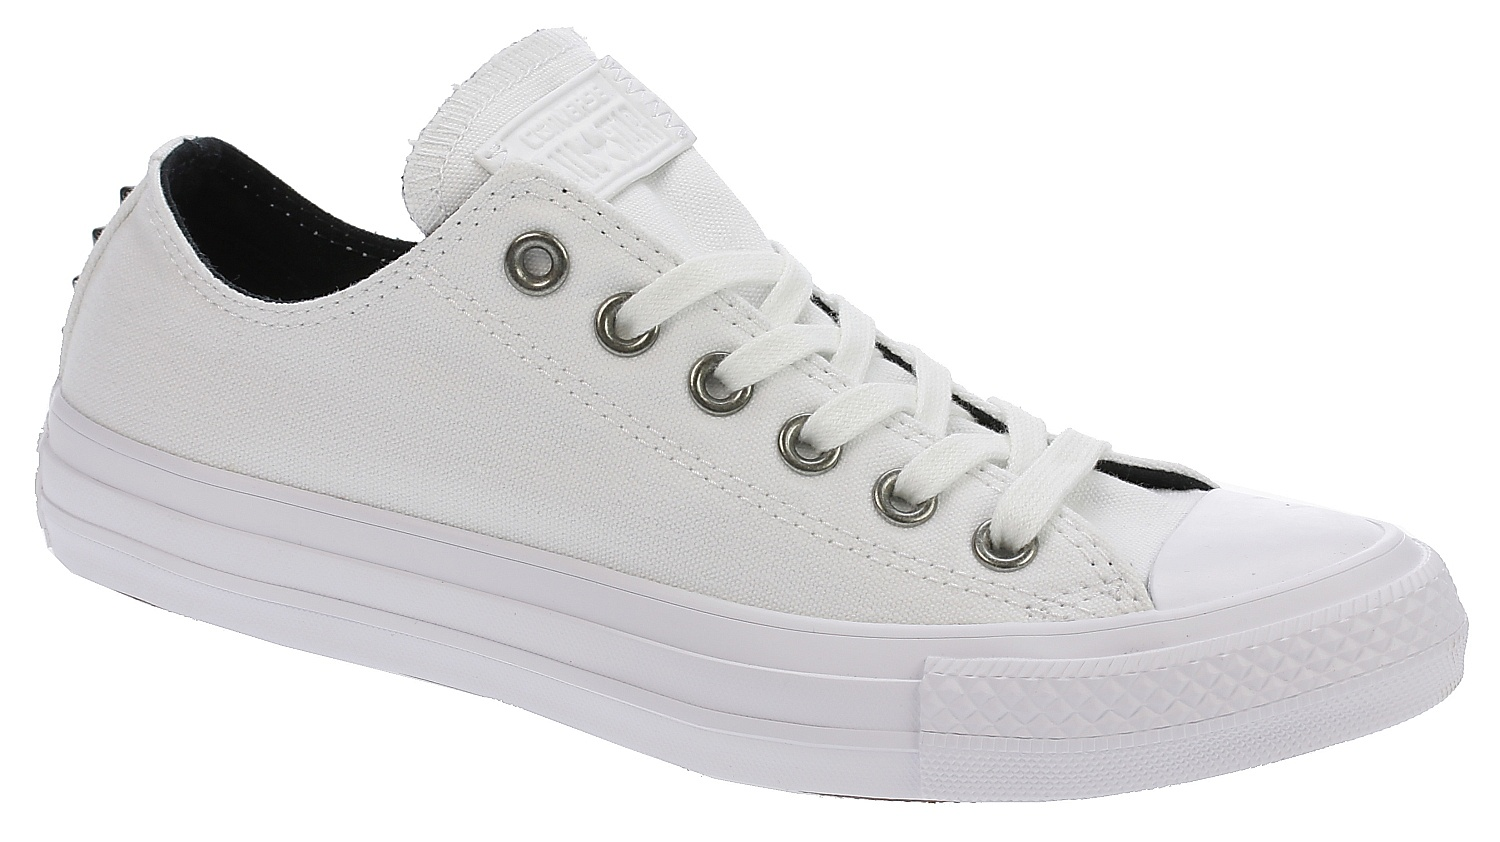 boty Converse Chuck Taylor All Star OX - 559829 White Black White 40 3333aeb00f7